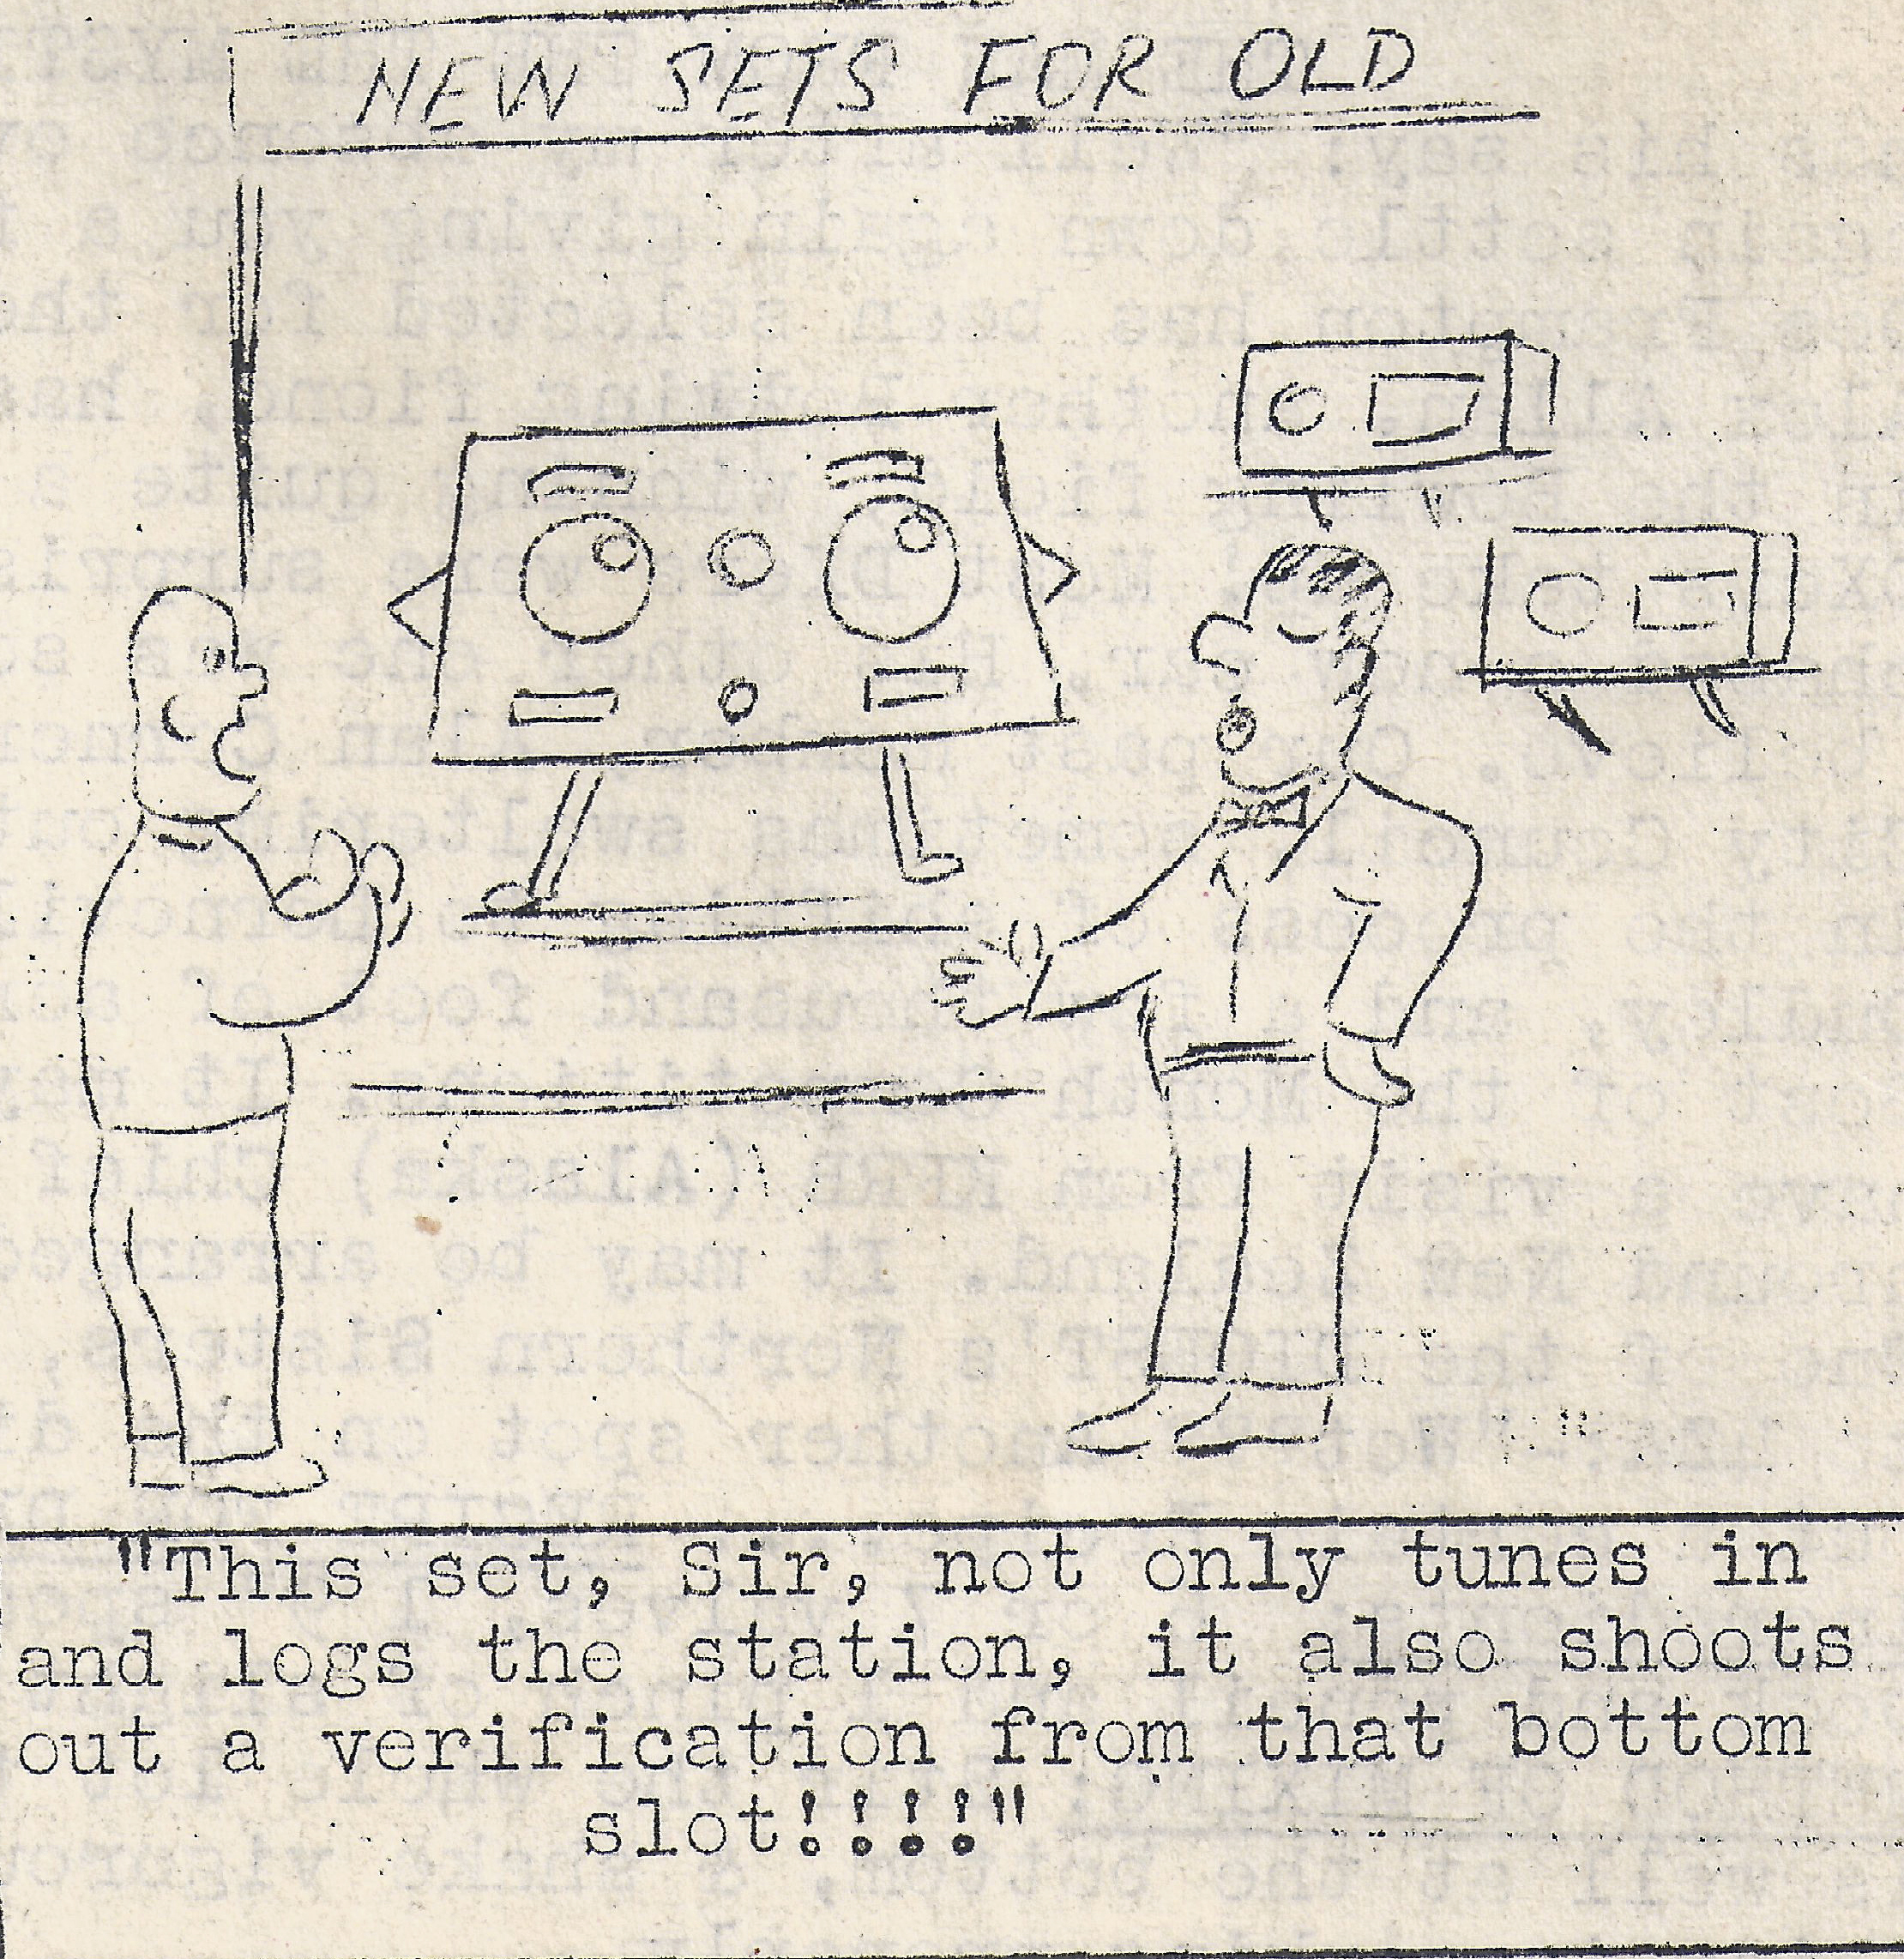 Receiver Joke from Aug 1956